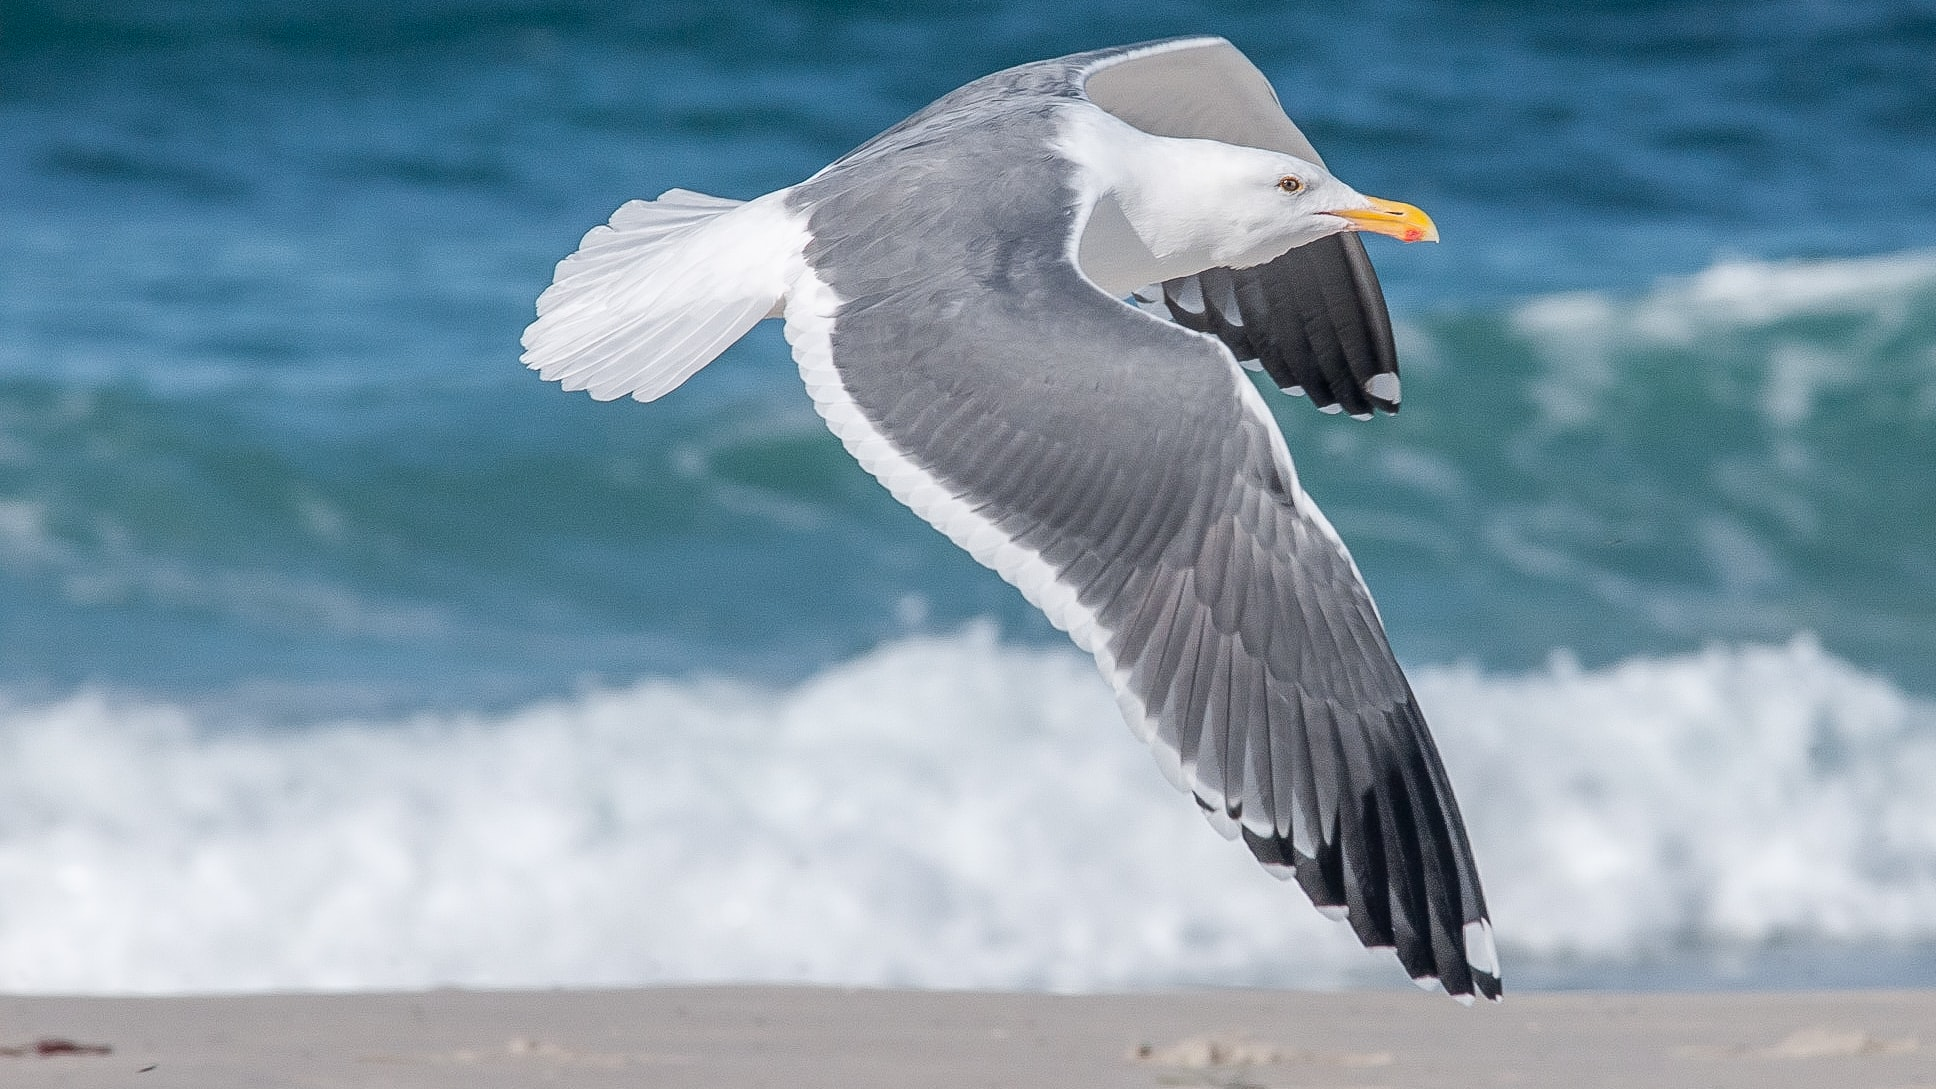 Seagull flying above the sandy beach by the ocean at Asilomar Beach